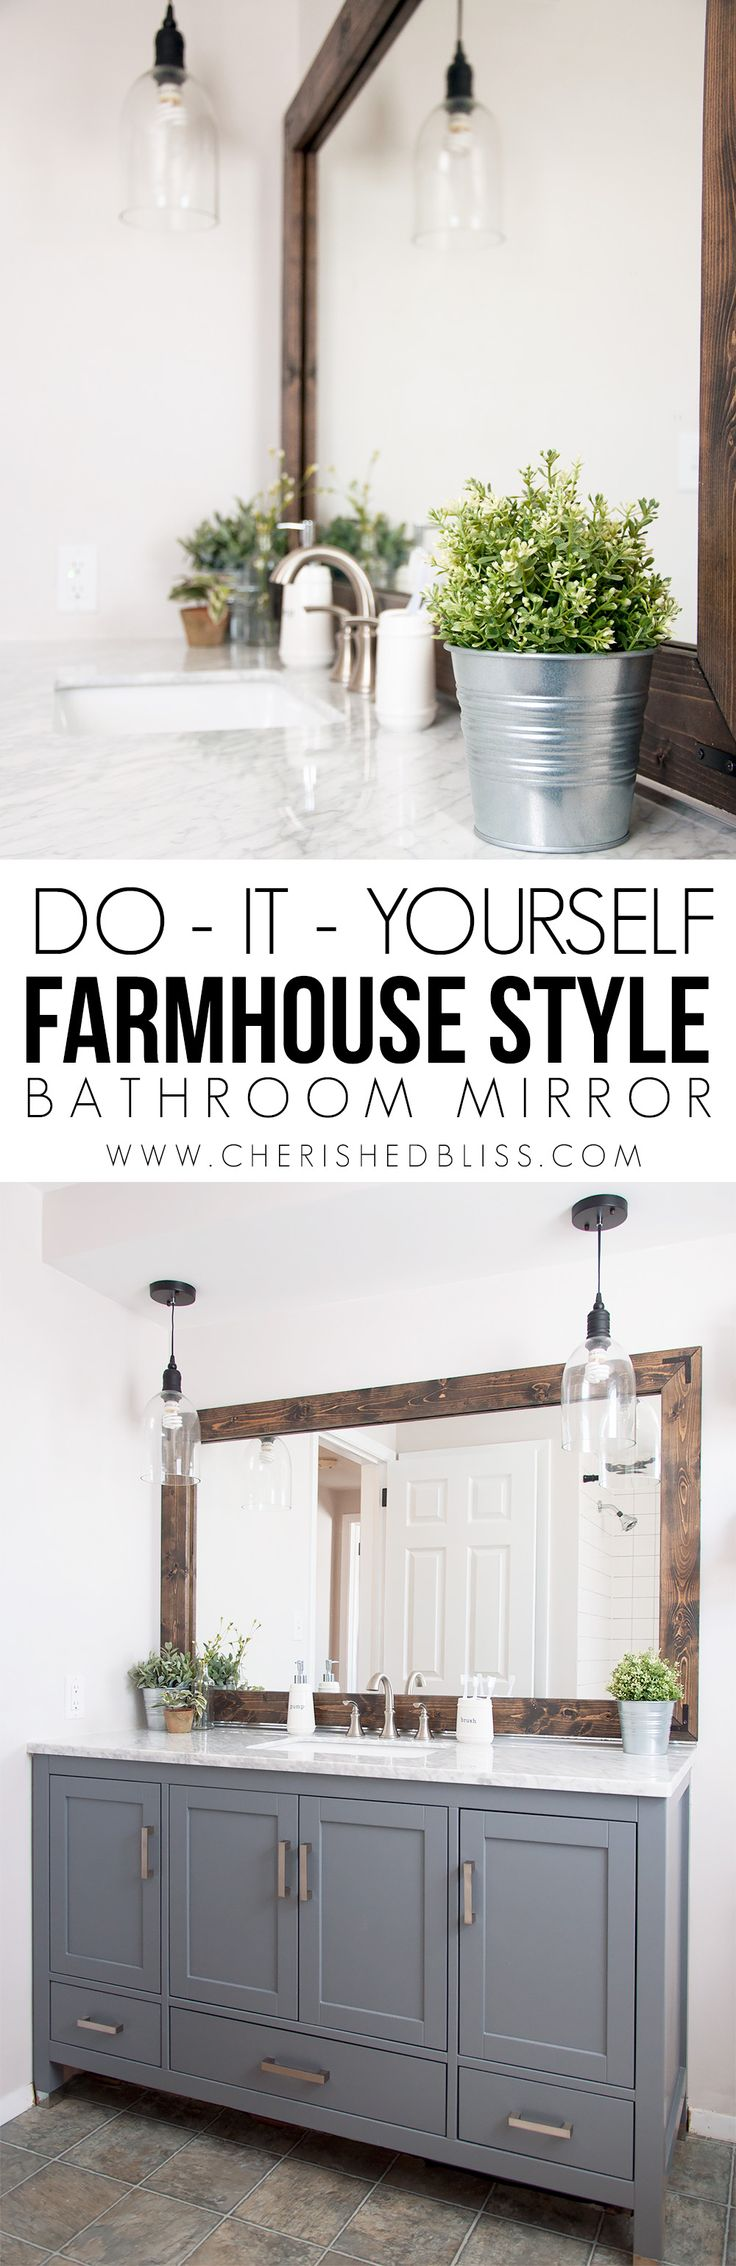 Diy Crafts Ideas : Add character to your bathroom with this DIY ...